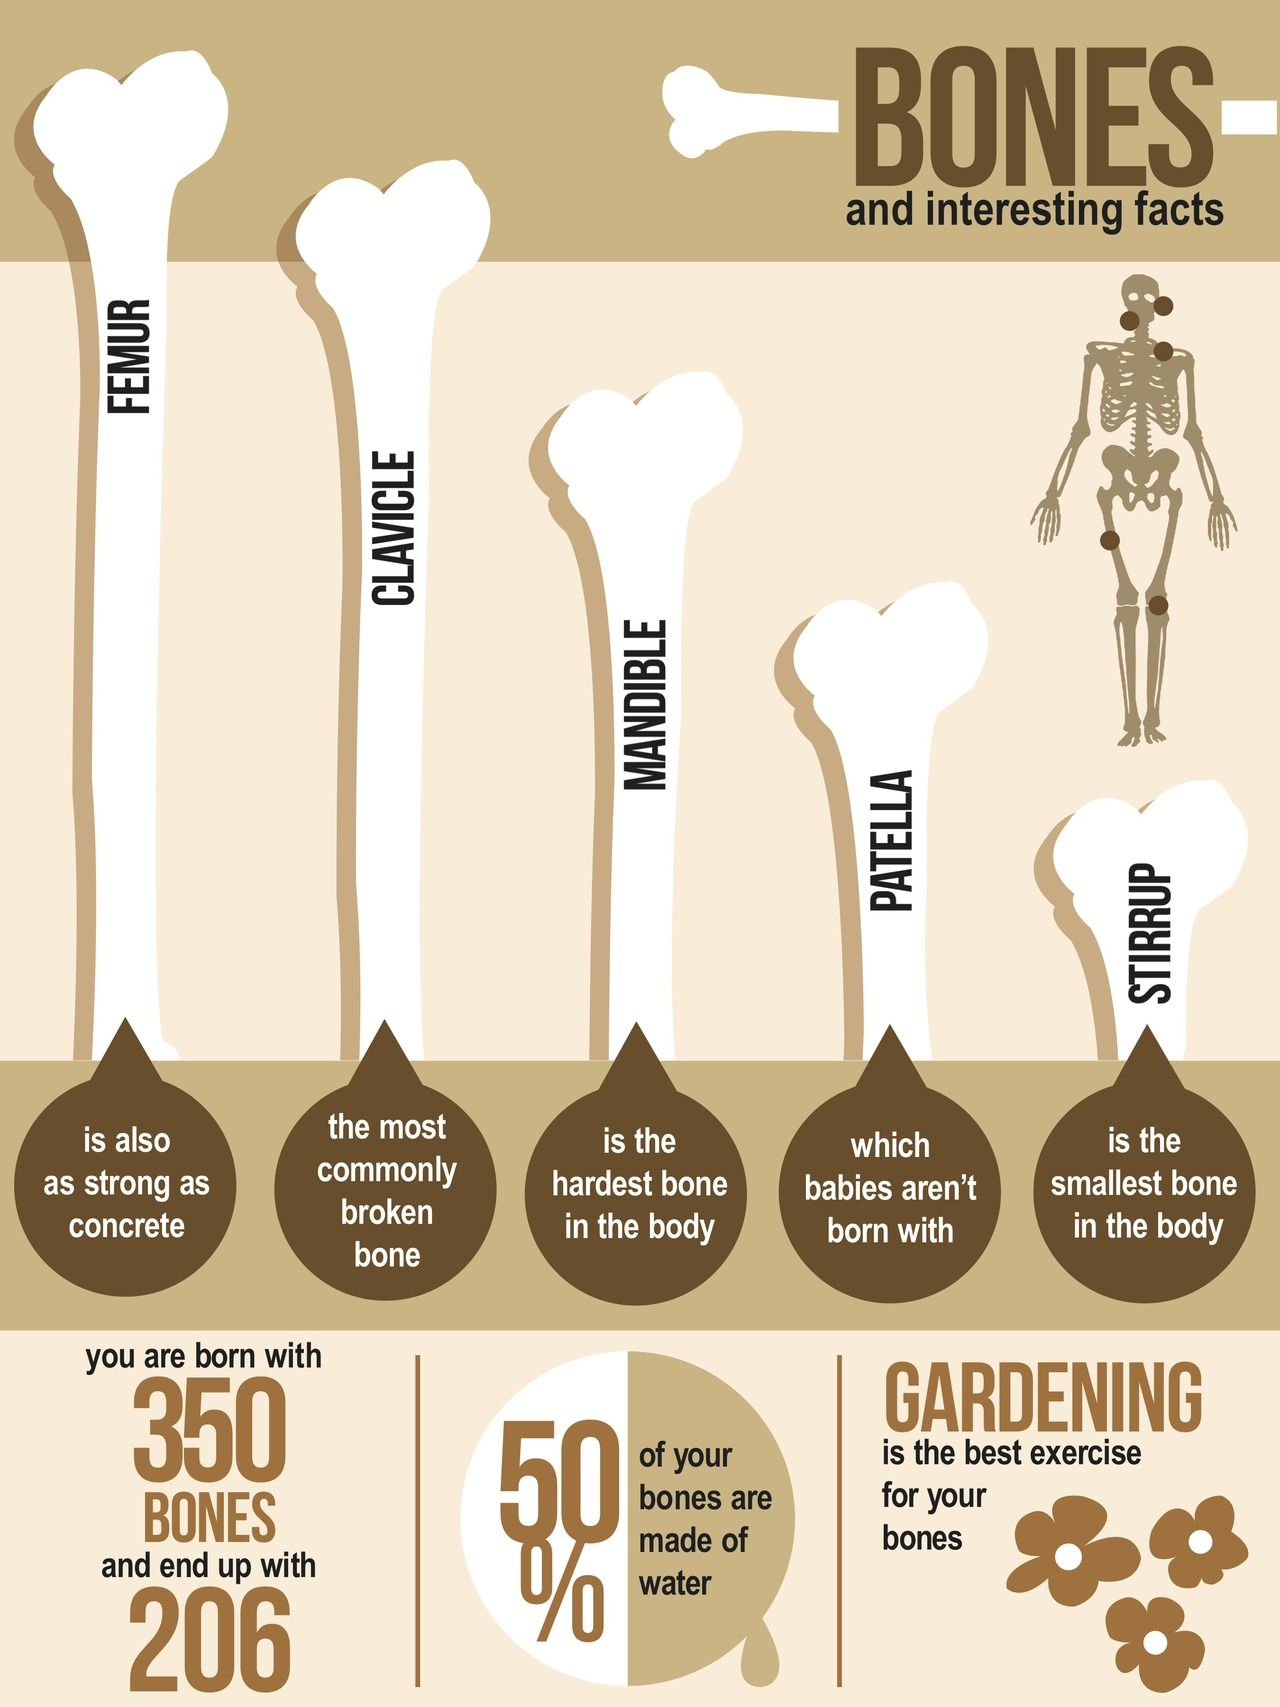 Bones Interesting Facts Gardening Is The Best Activity